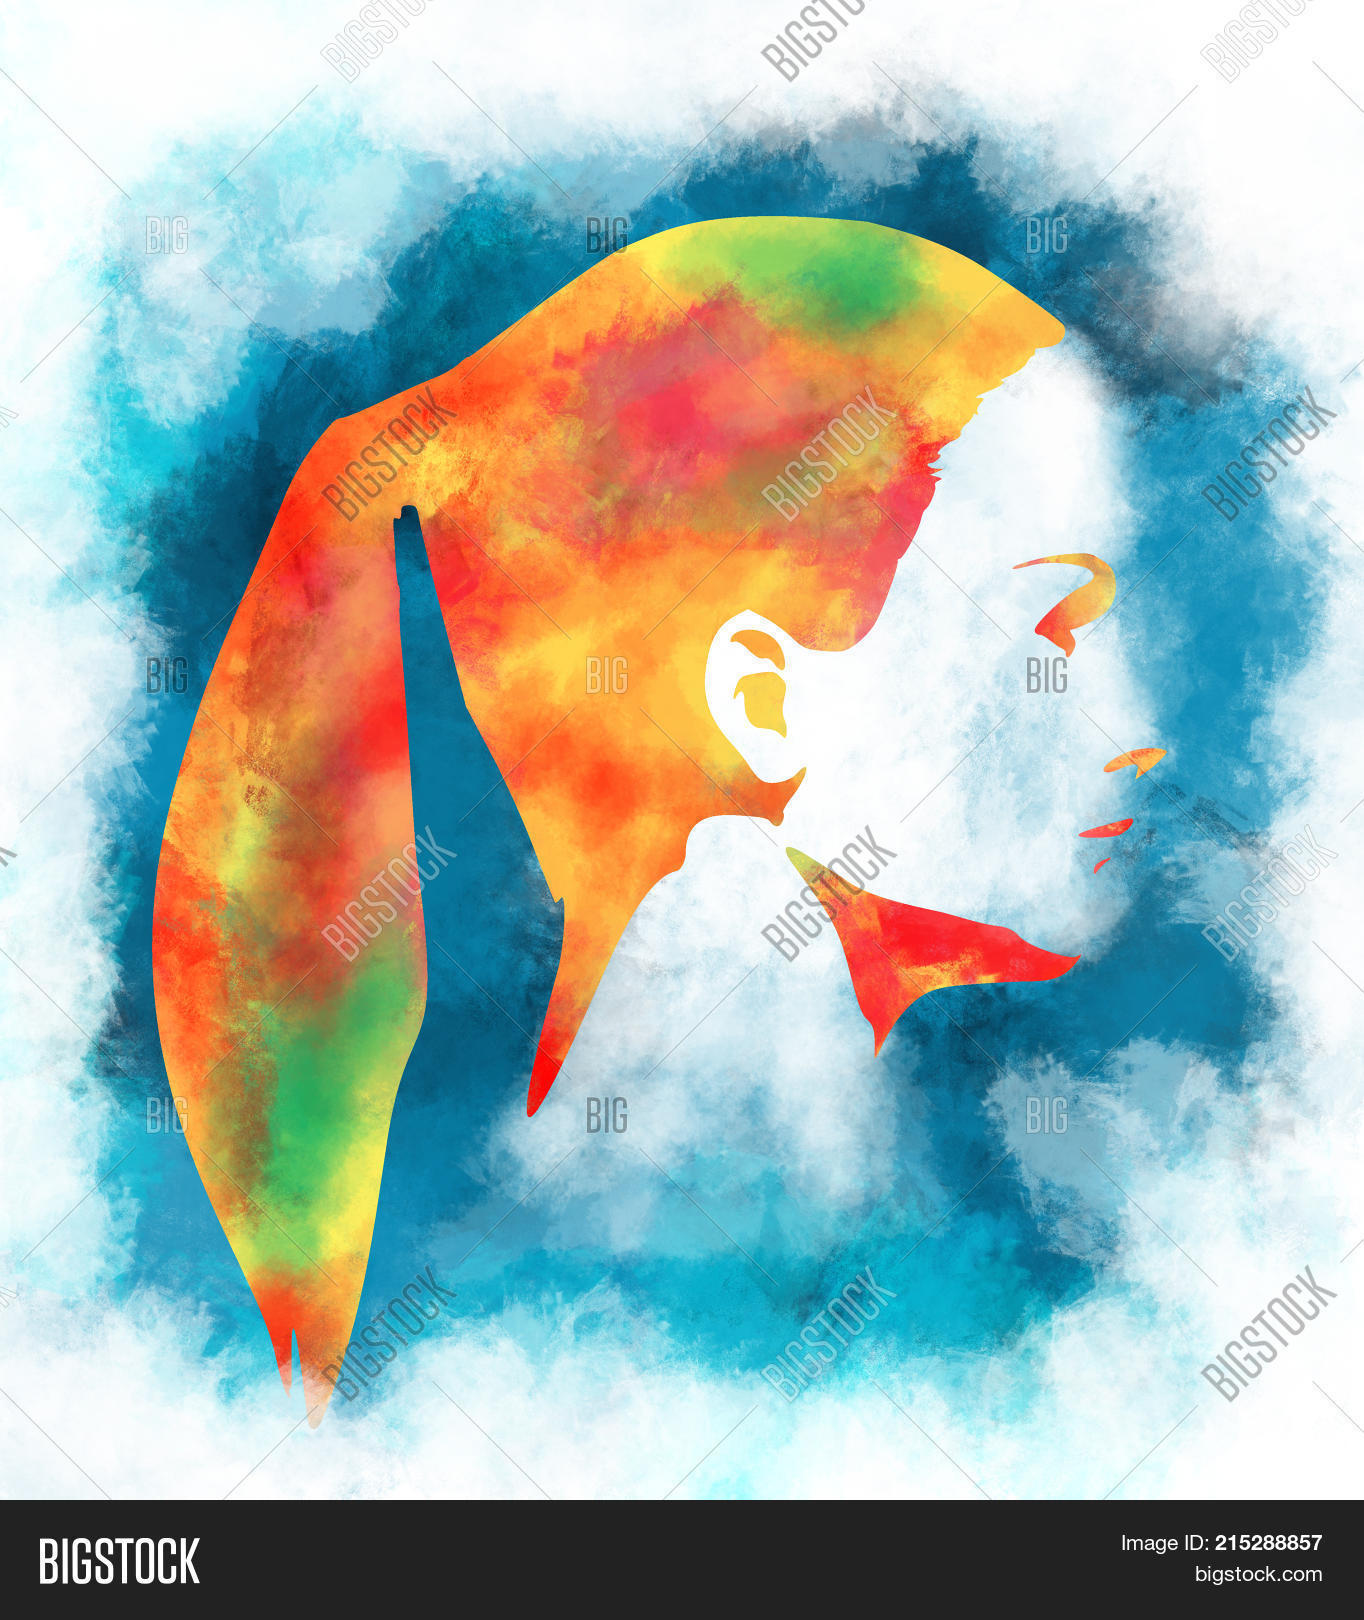 Art colorful sketching beautiful girl face with pony tail hairstyle portrait of beautiful woman